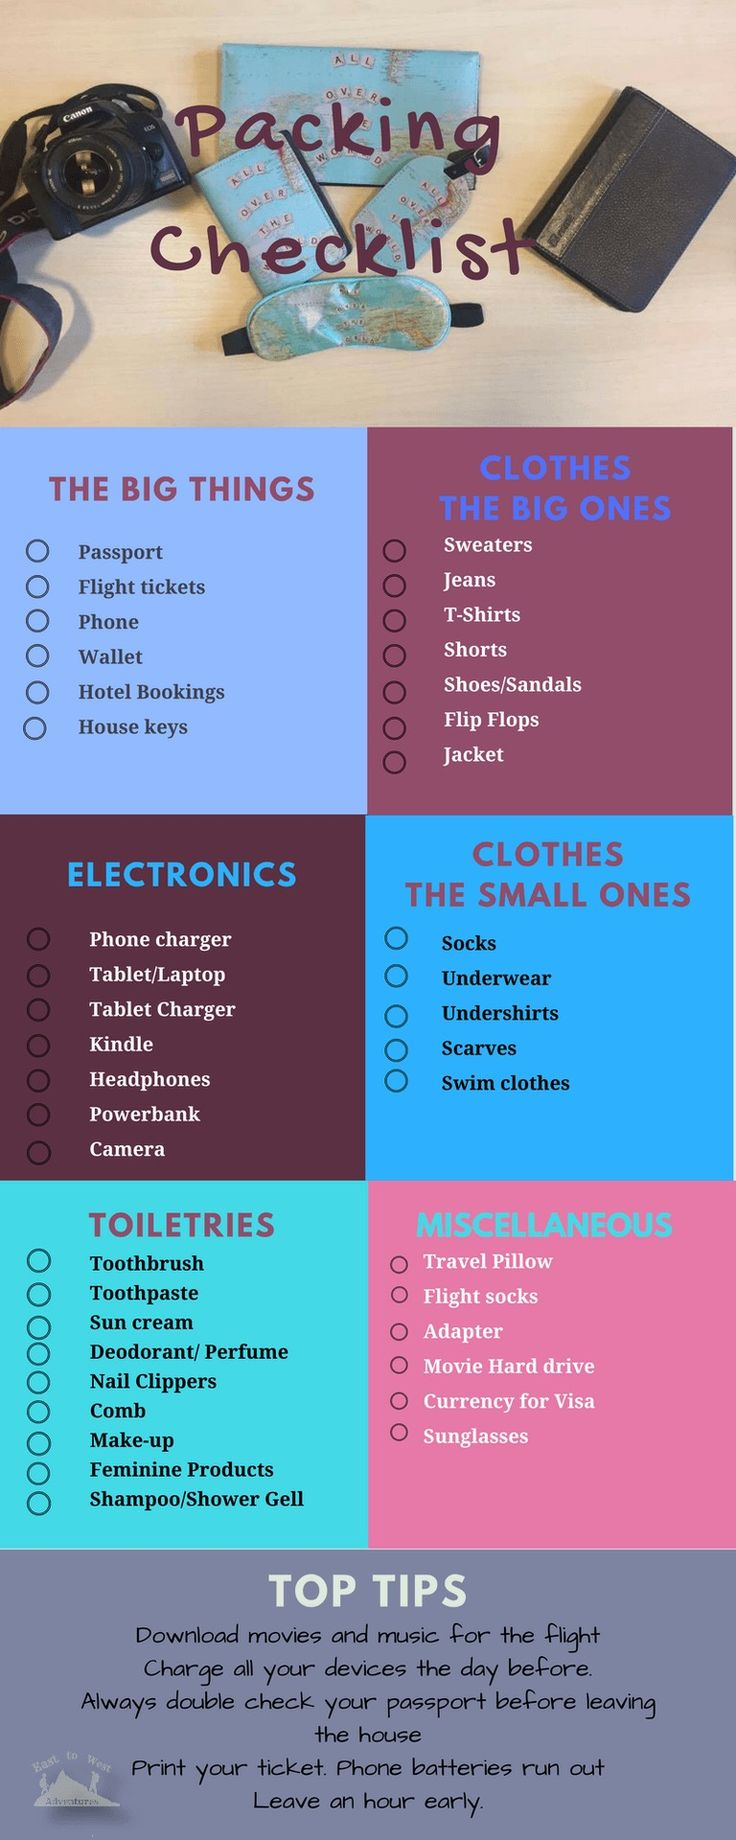 Make sure you don't forget anything with our packing checklist http://www.easttowestadventures.com/en/dont-forget-packing-checklist/ #easttowestadventures #travelblogger #travelphotography #travelphotographer #packinglist #packingtips #checklist #travelchecklist